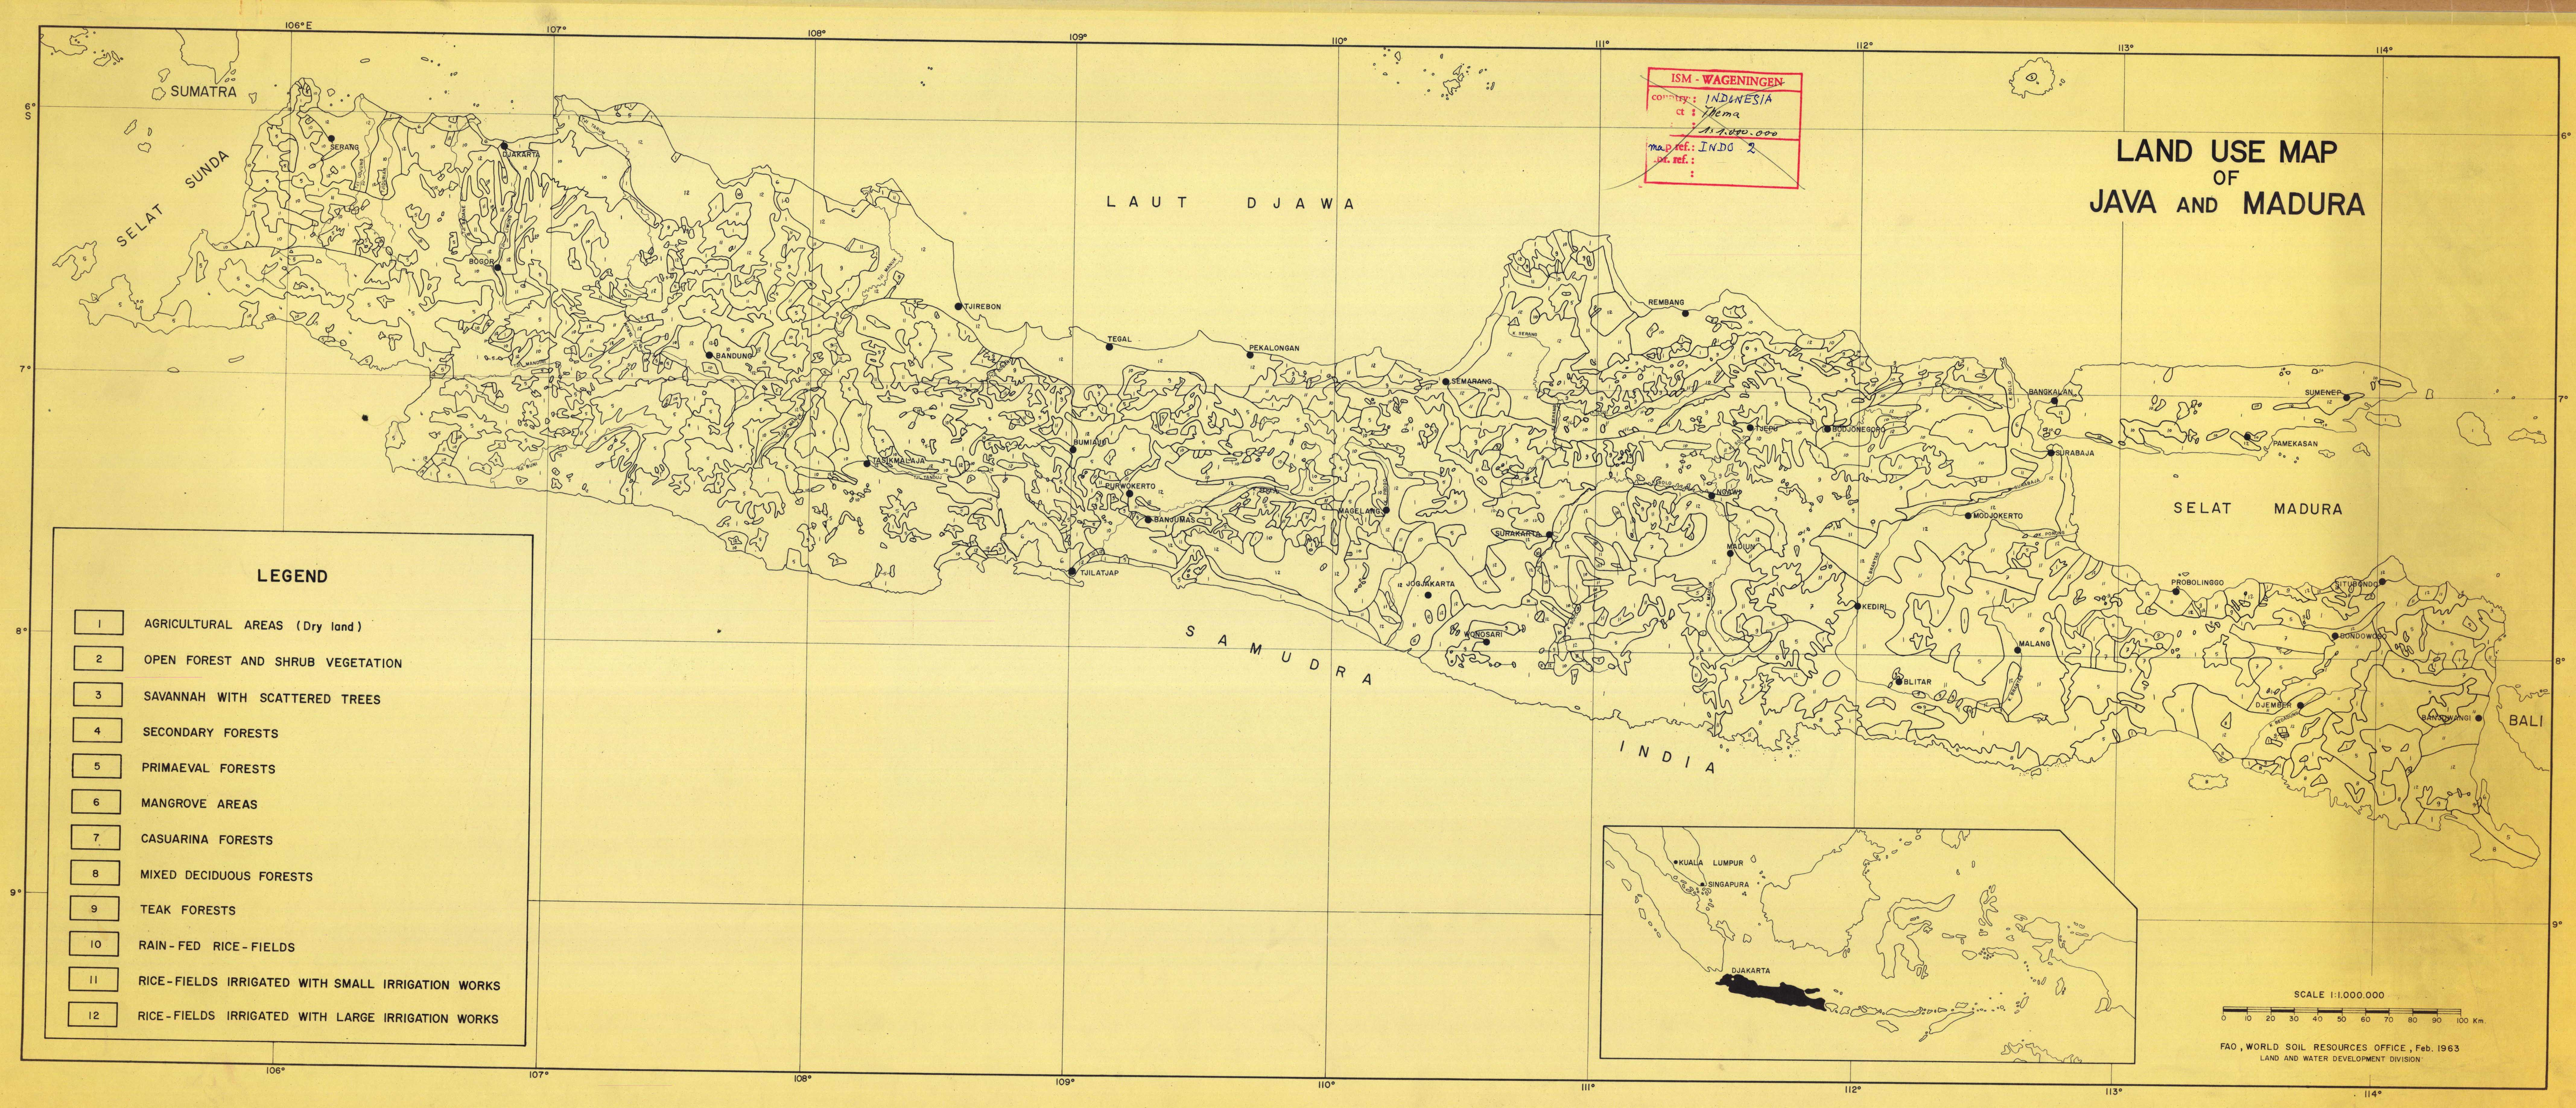 Land use map of java and madura esdac european commission download gumiabroncs Images